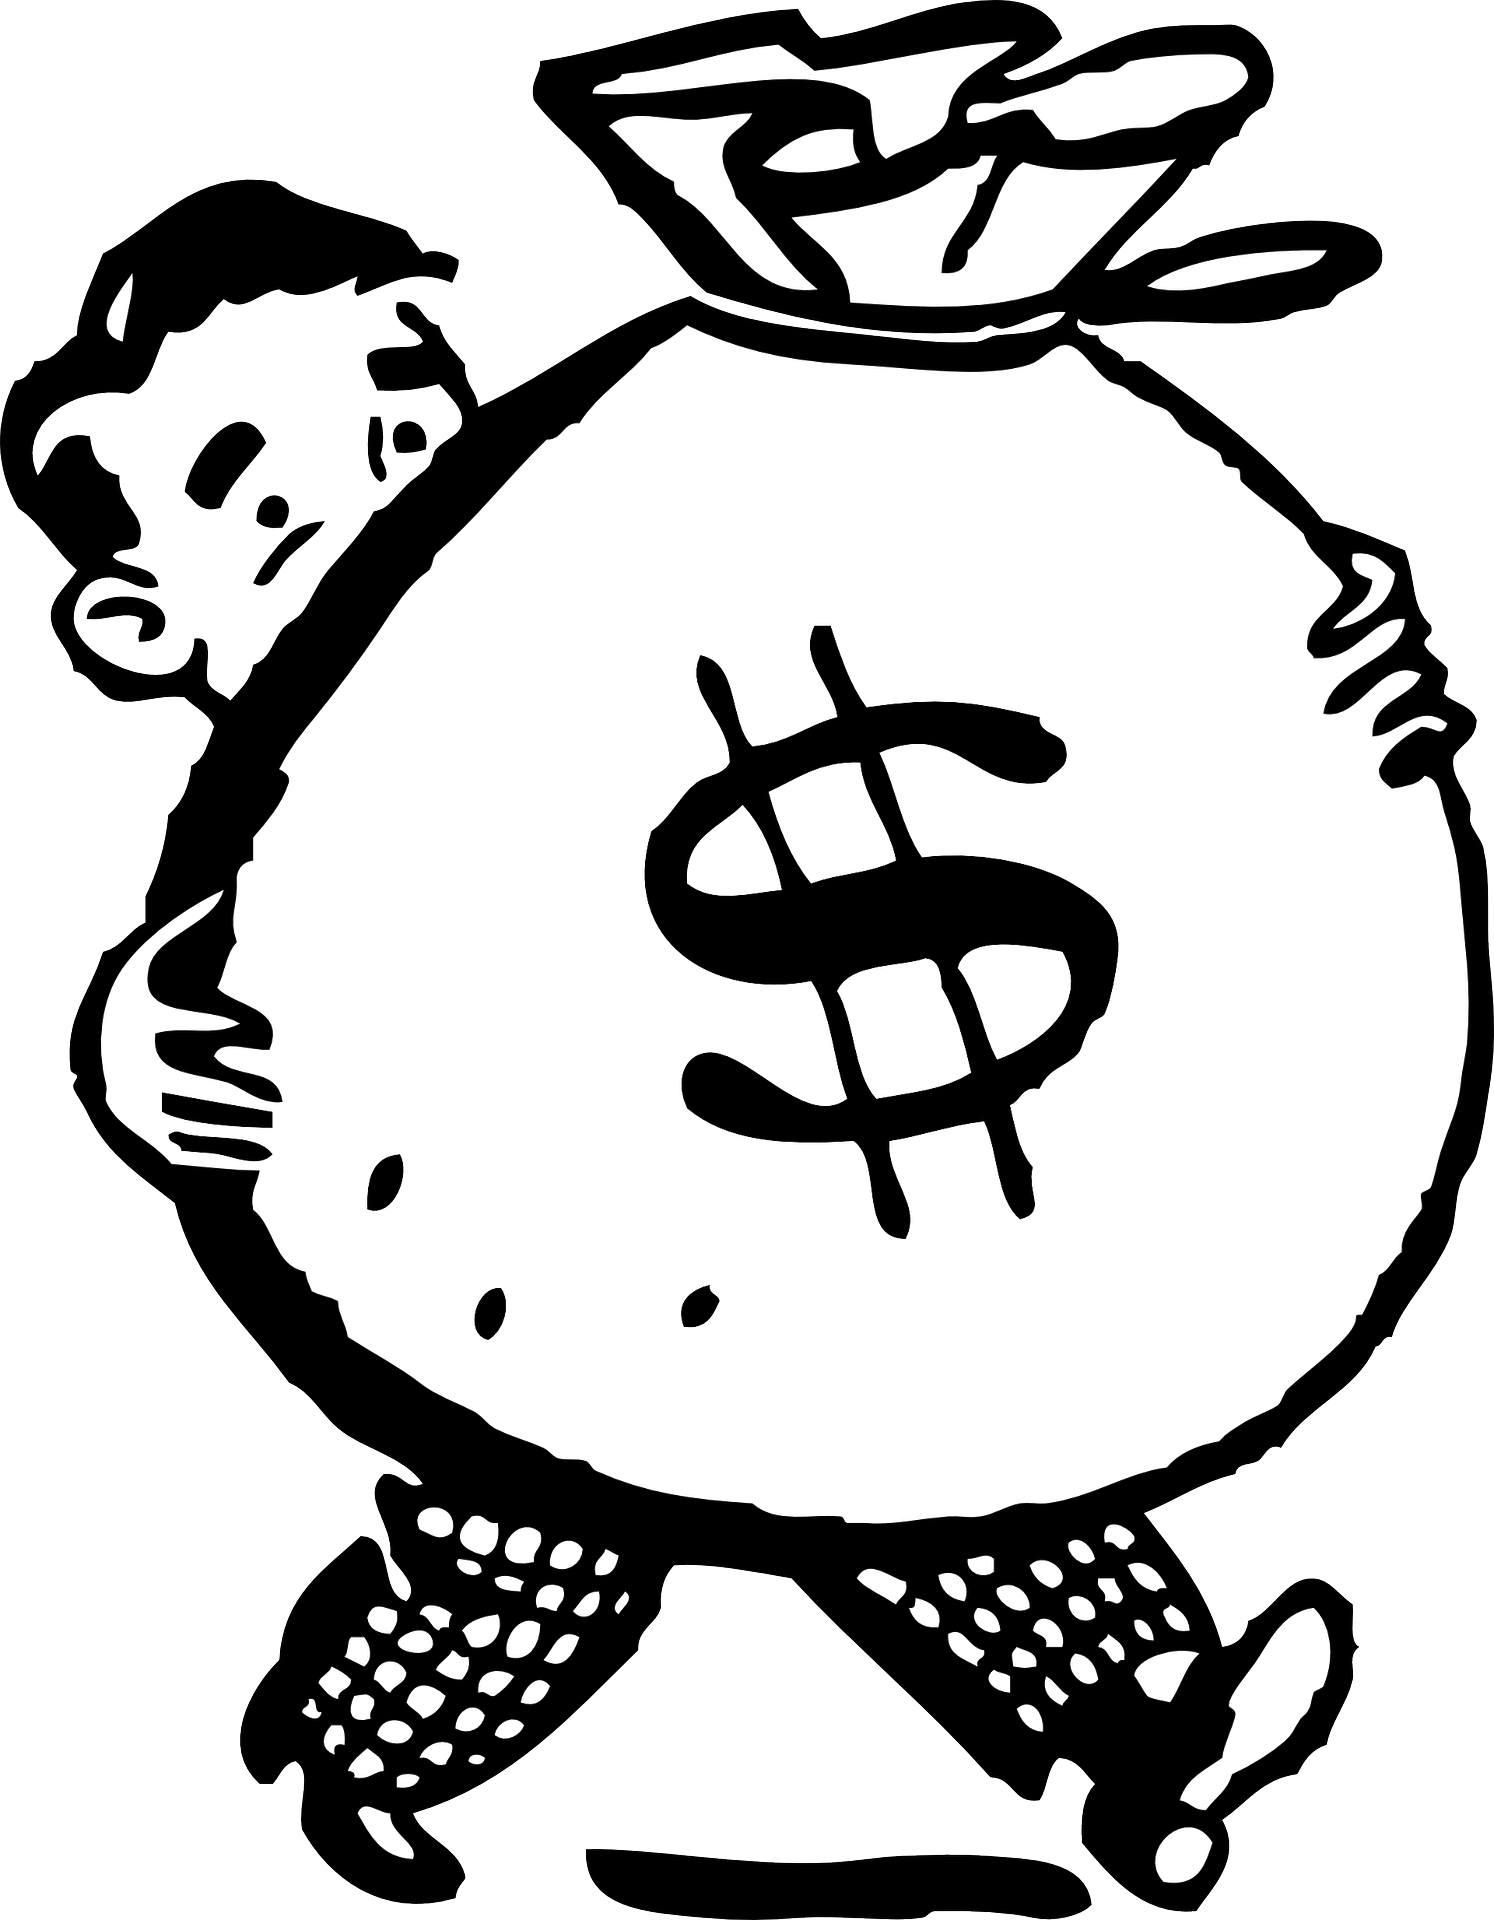 Lending money clipart clip black and white library Loan Drawing at GetDrawings.com | Free for personal use Loan Drawing ... clip black and white library